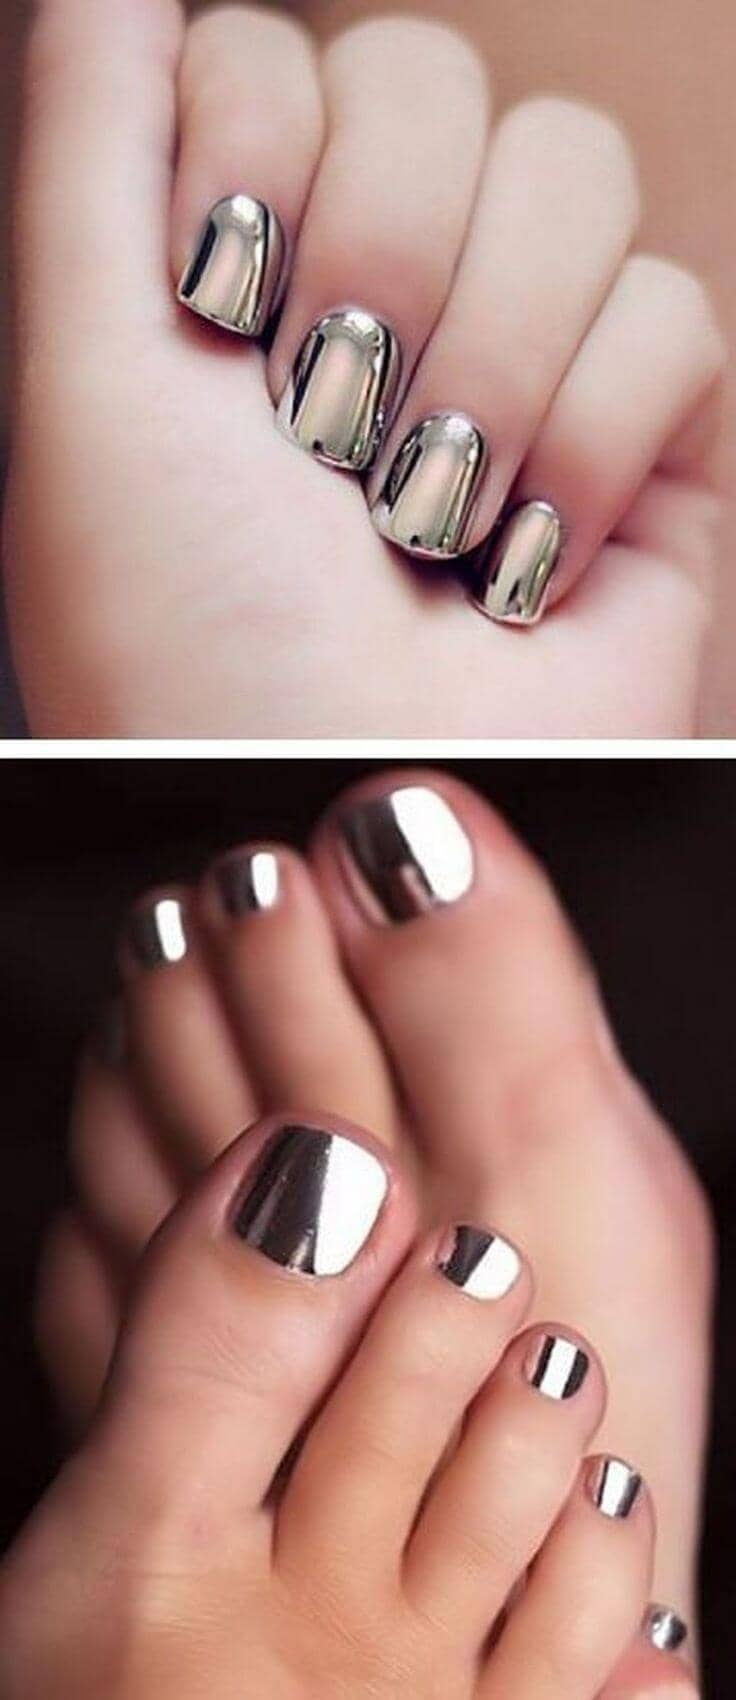 Matching Metallic Silver Toes and Fingers